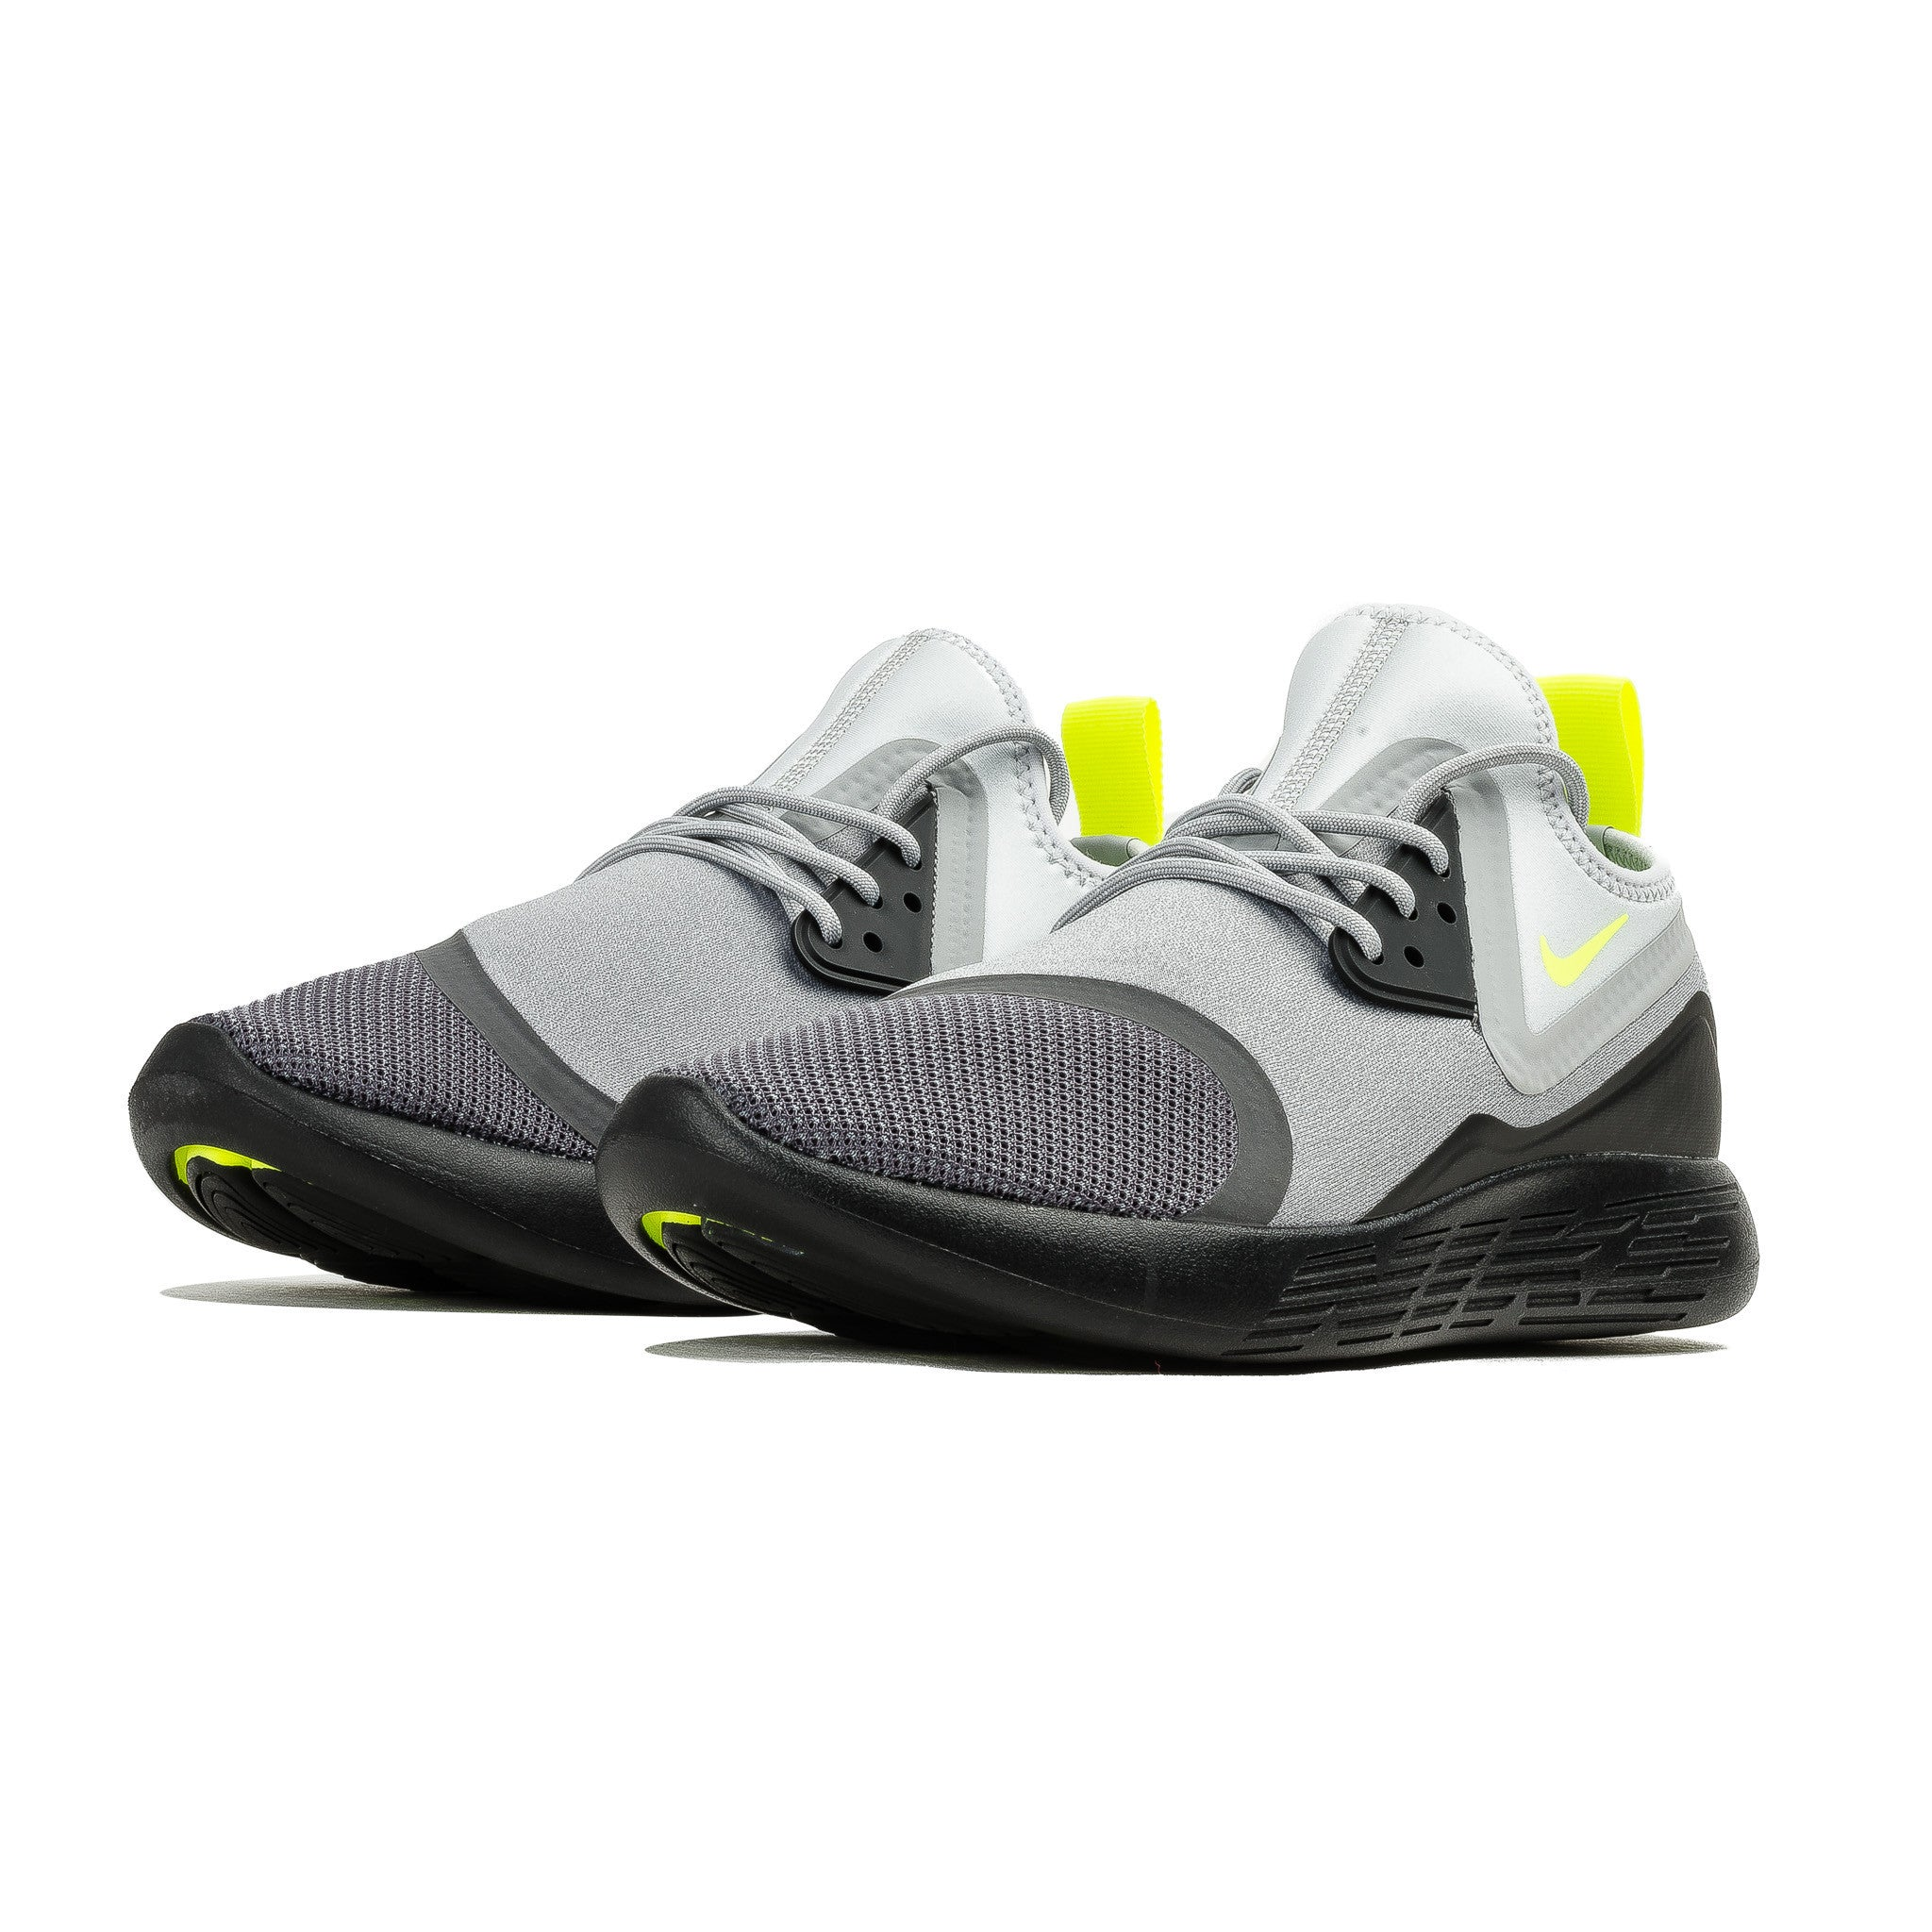 Nike Lunarcharge BN 933811-070